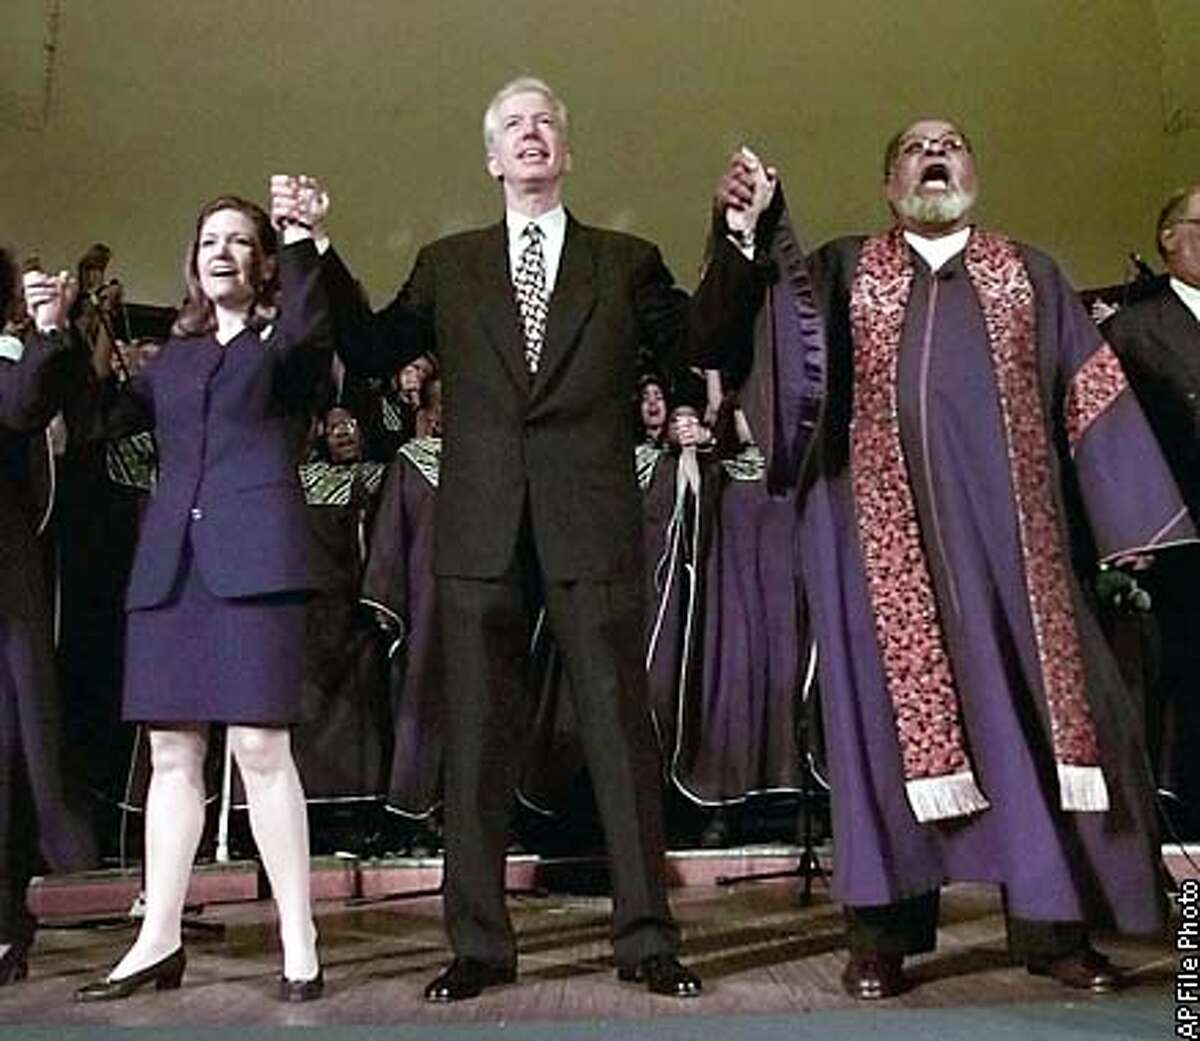 """Democratic candidate for governor, Gray Davis, center, joins hands with his wife, Sharon Davis, left, and Rev. Cecil Williams, right, as they sing """"We Shall Overcome"""" at the Glide Memorial Church in San Francisco, Sunday, May 24, 1998. Willams announced his retirement from the church earlier in the week. (AP Photo/Paul Sakuma)"""